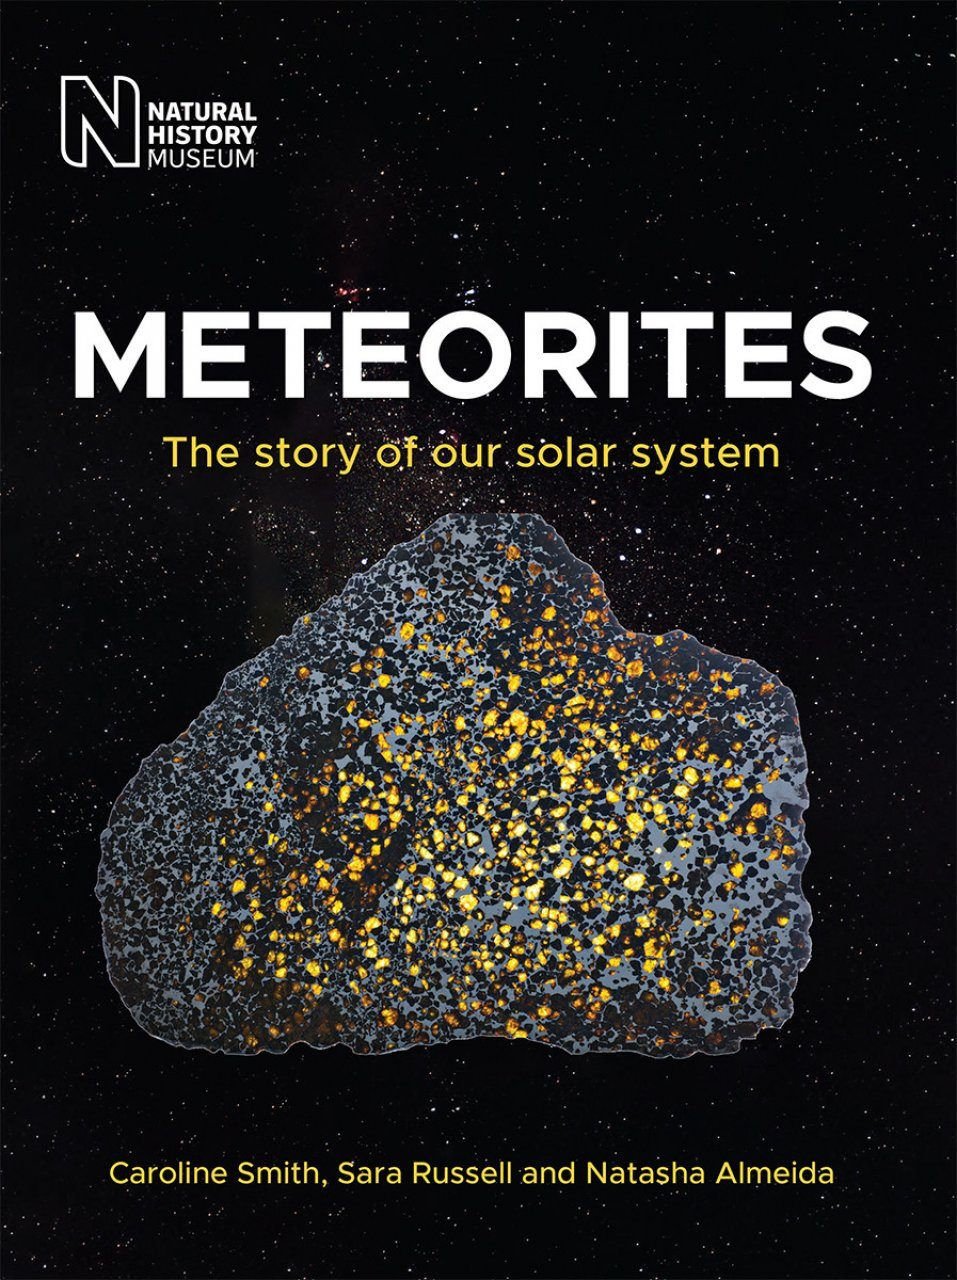 Meteorites: The Story of Our Solar System